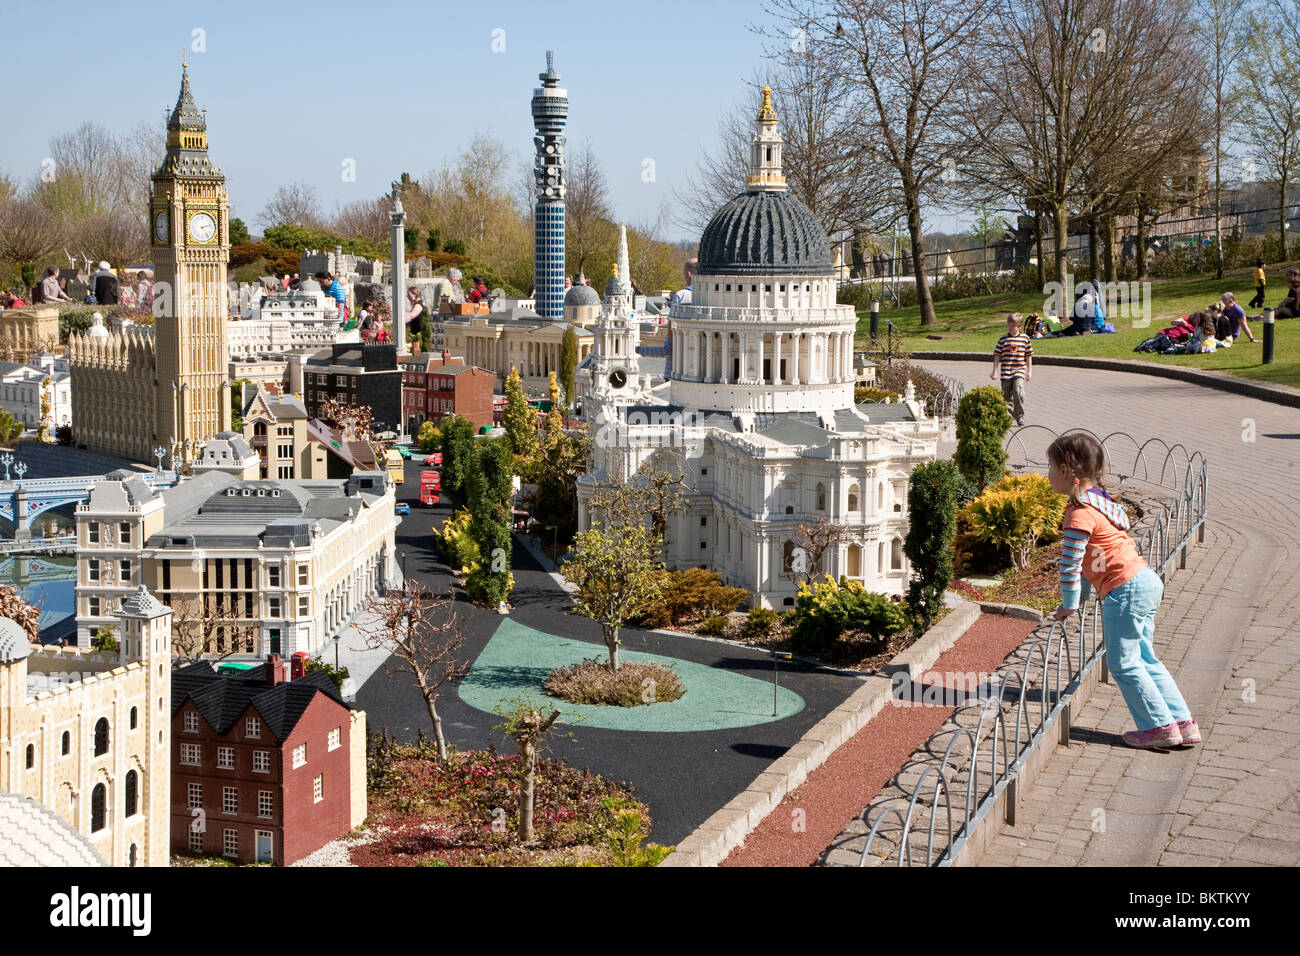 Young girl looking at models of London buildings in Miniland at LEGOLAND Windsor - Stock Image